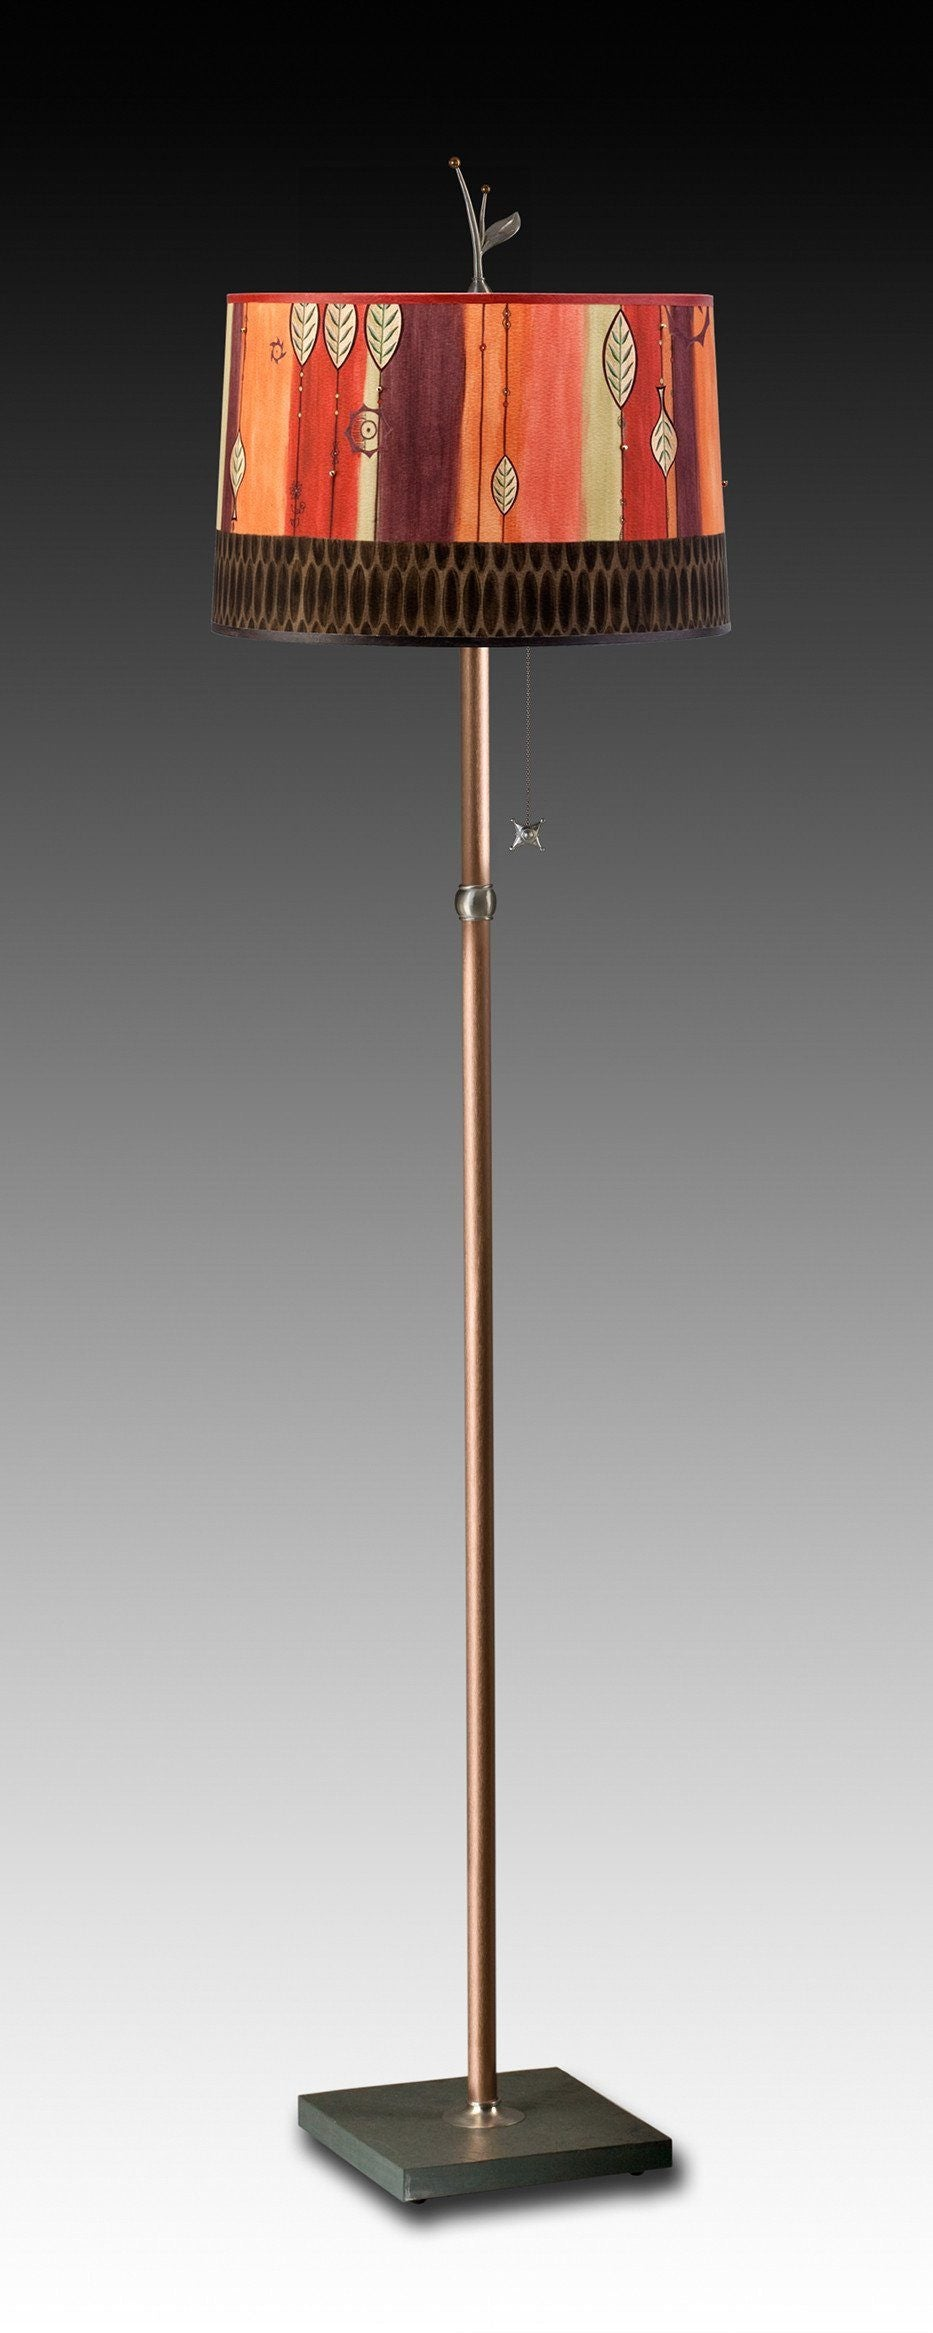 Copper Floor Lamp on Vermont Slate with Large Drum Shade in Leaf Stripe Red